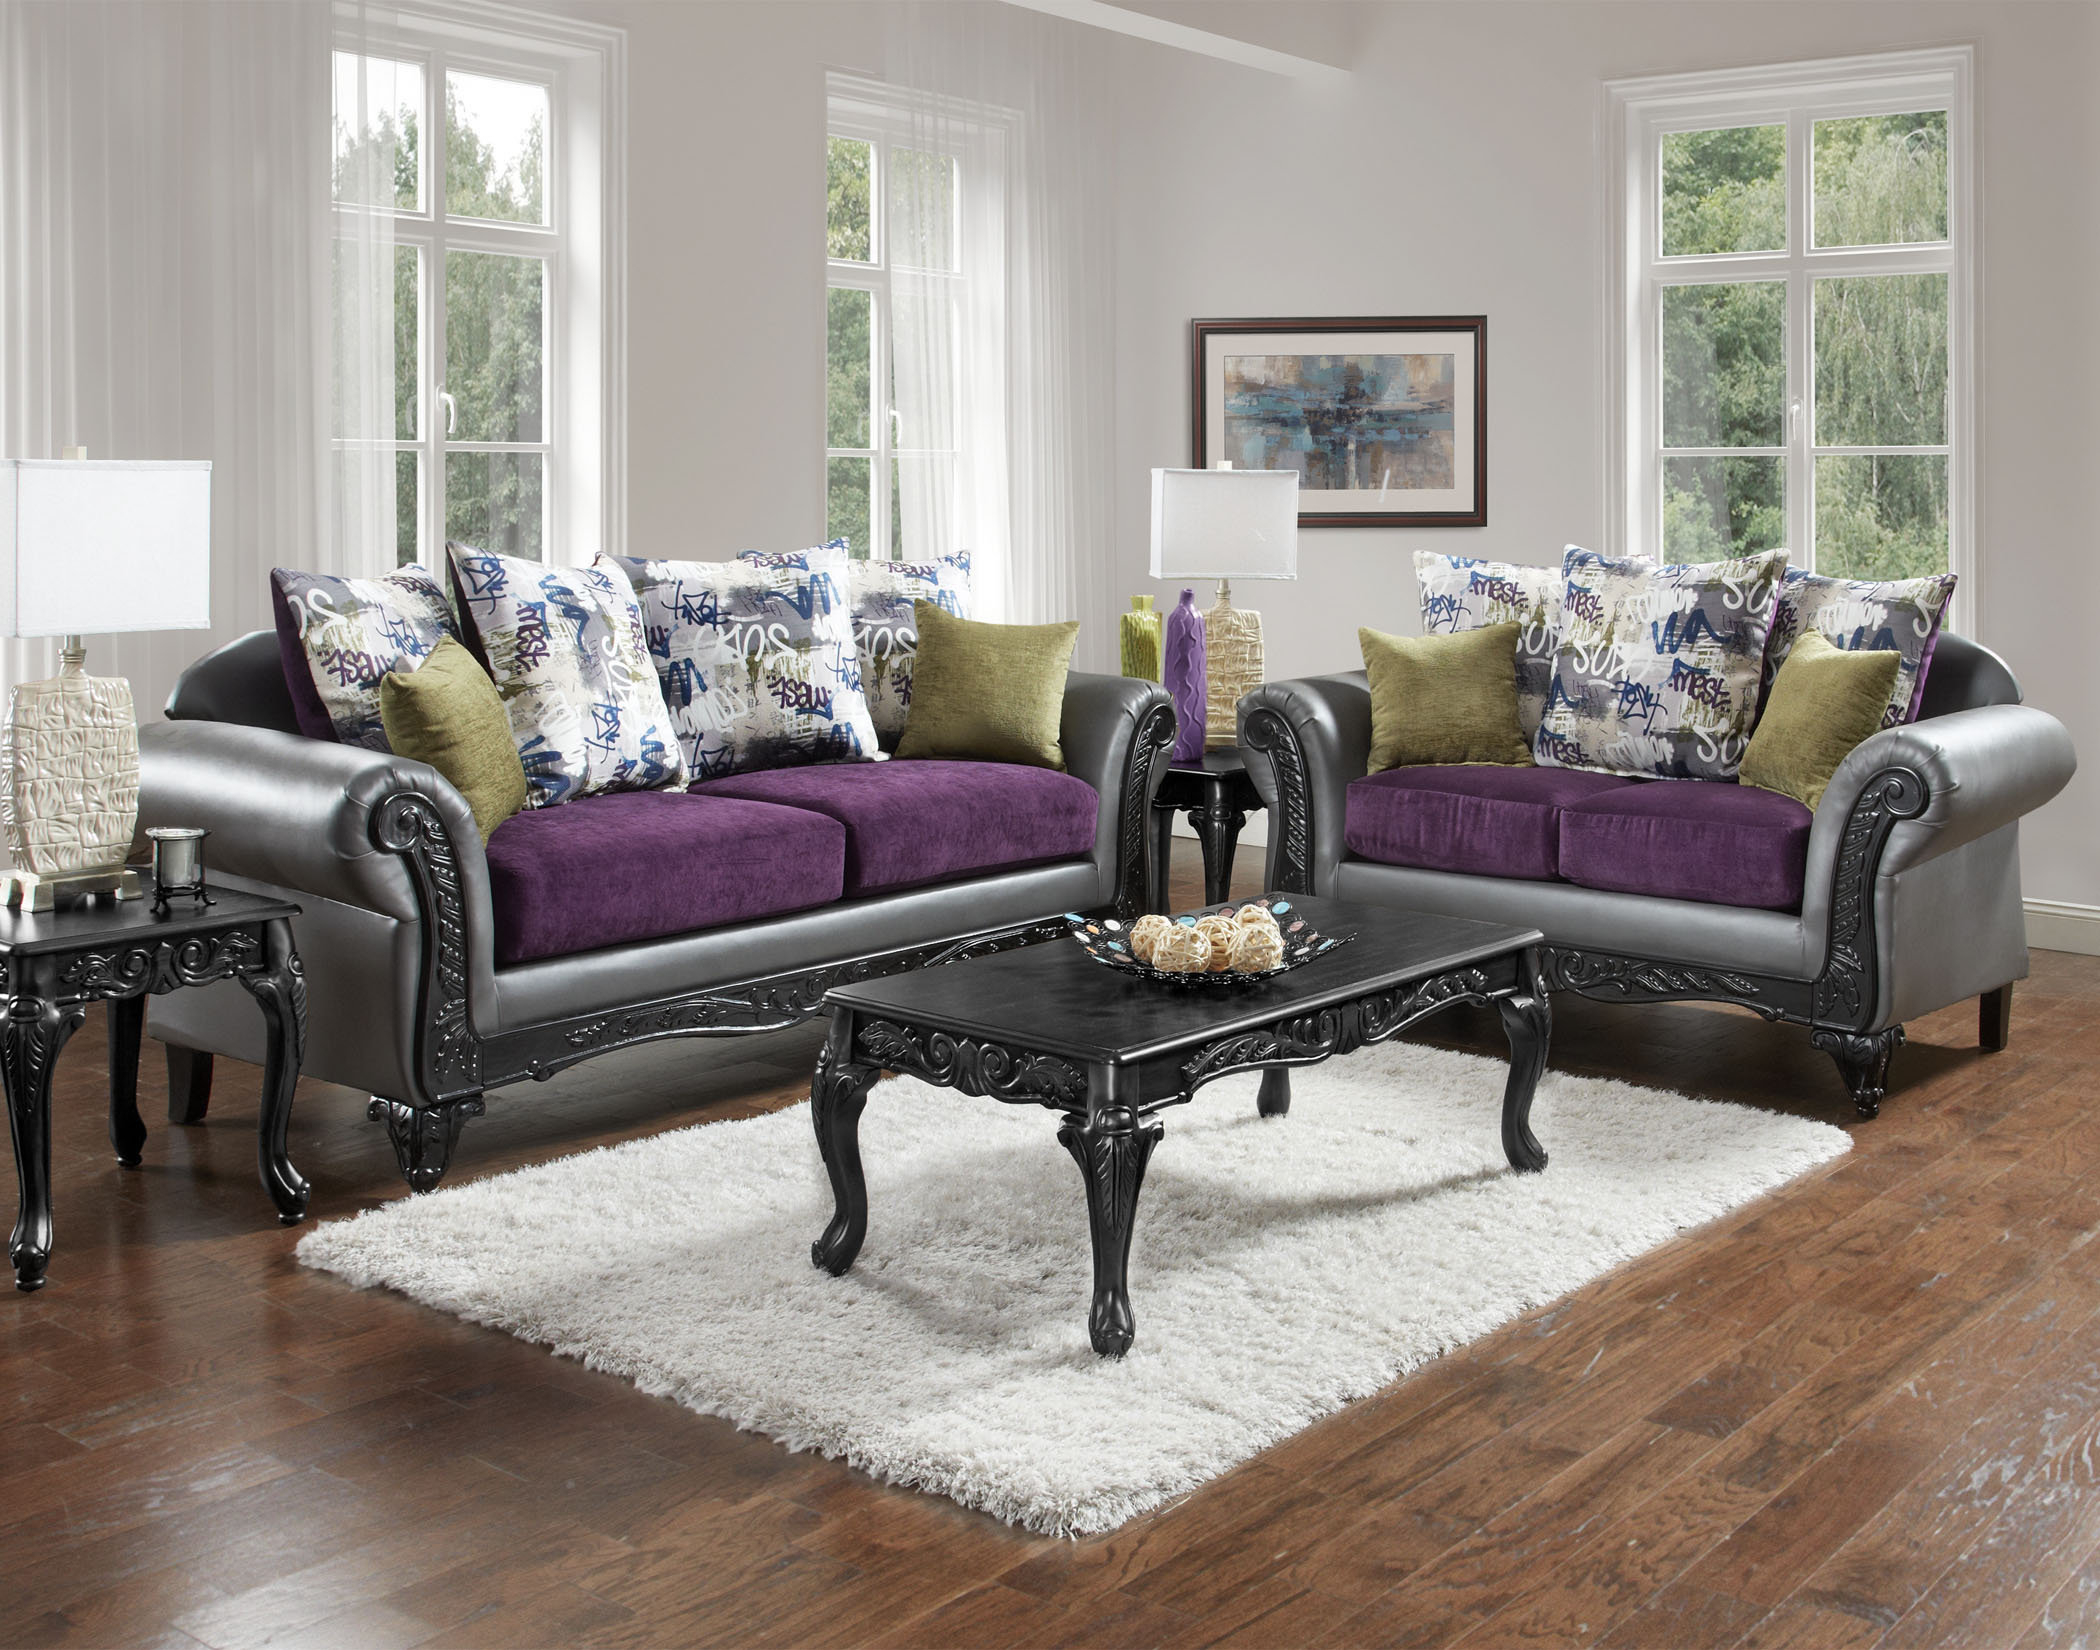 Chelsea Home Elsa Configurable Living Room Set Reviews Wayfair with regard to 12 Clever Initiatives of How to Craft Nice Living Room Set